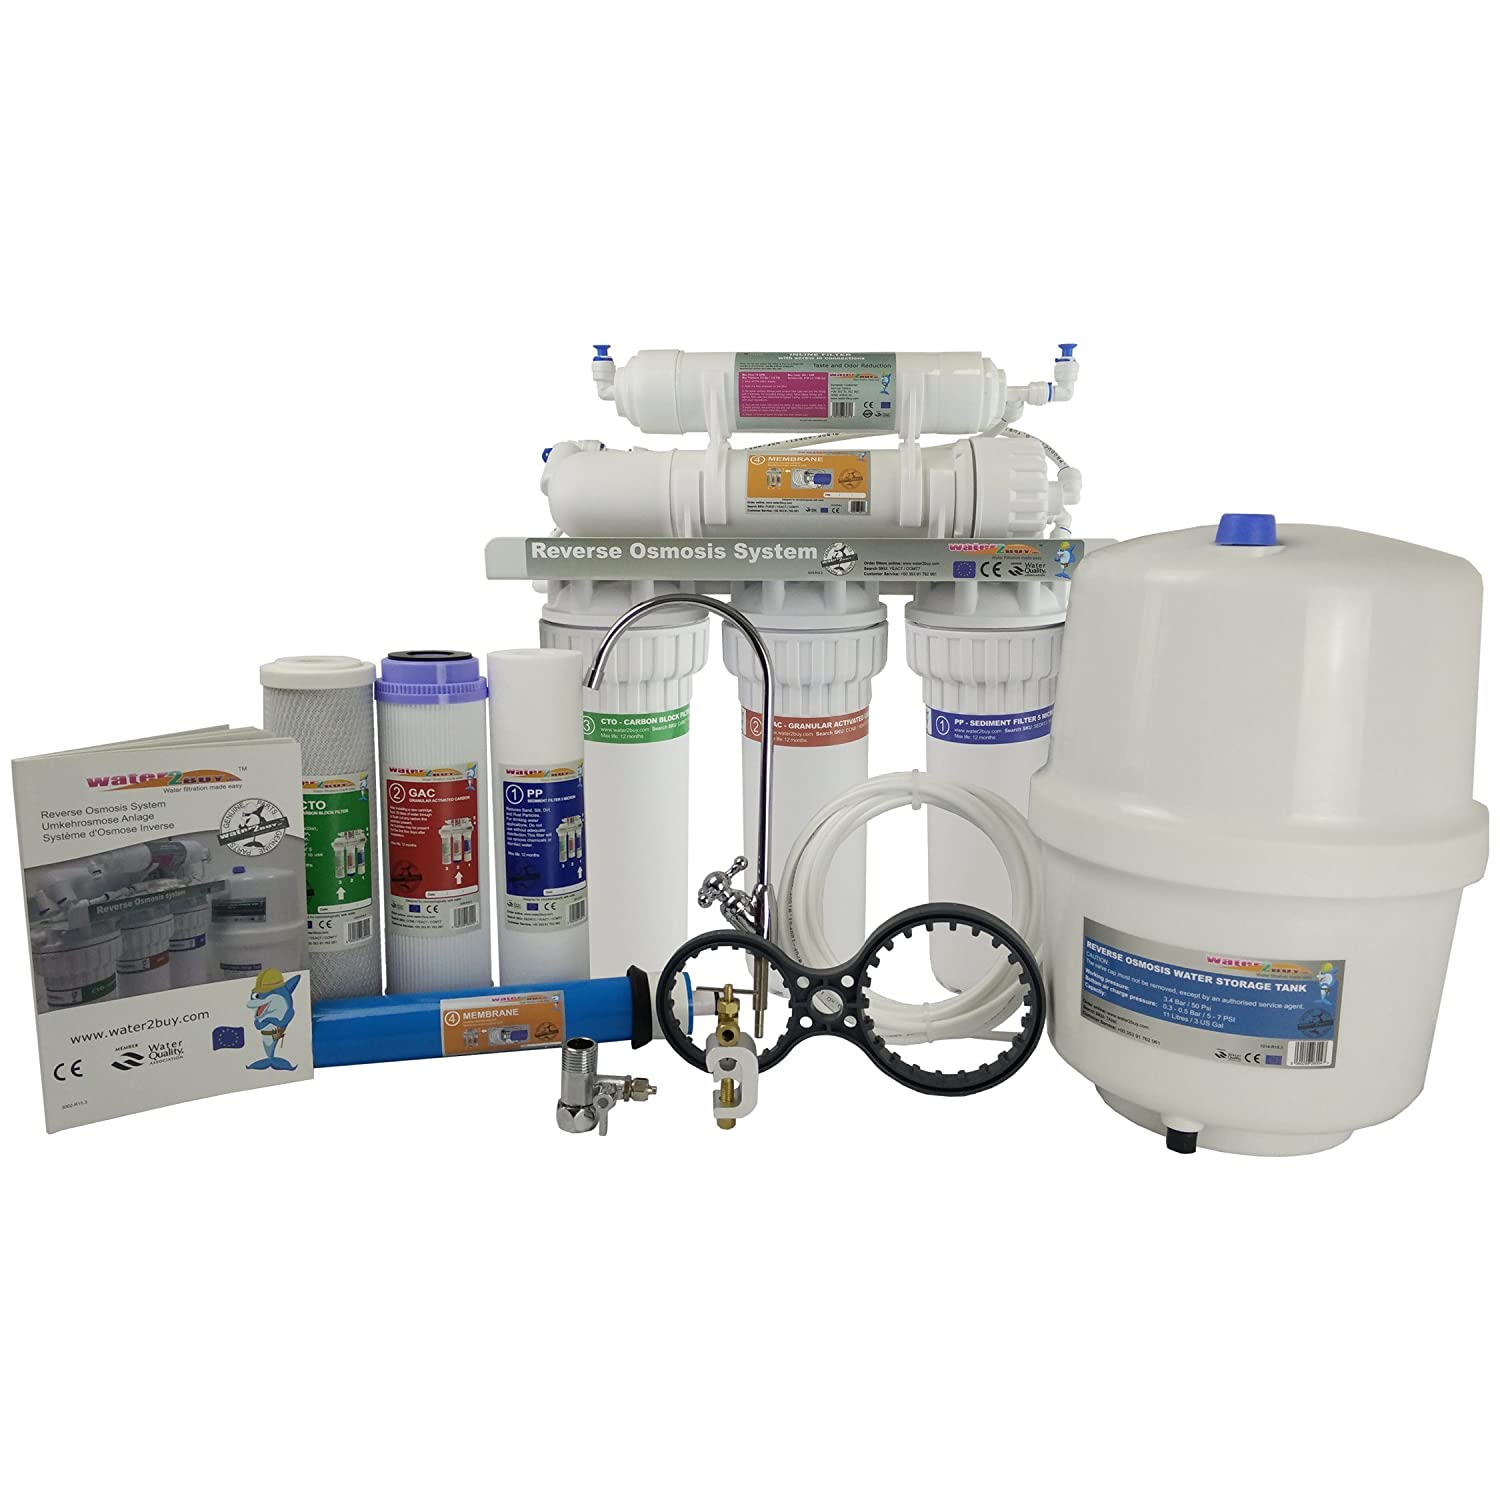 Water2Buy RO500 Reverse Osmosis Water Filter System Build for UK home Removes up to 98% contaminants *****